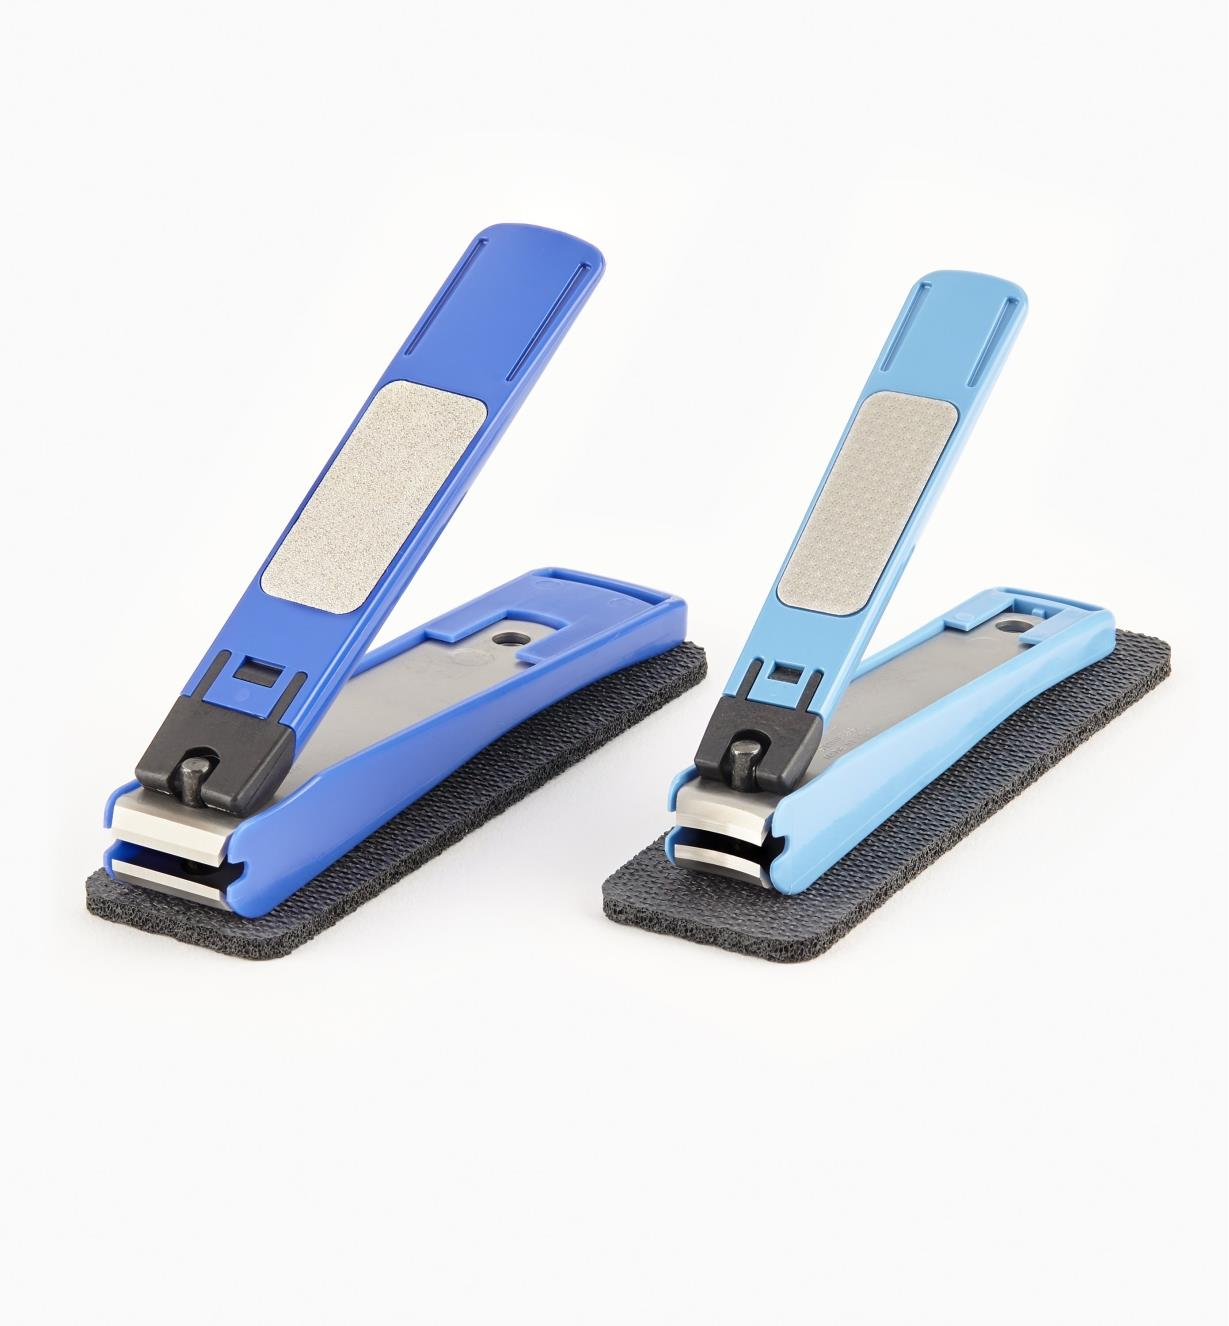 09A0623 - Fingernail and Toenail Clippers, set of 2